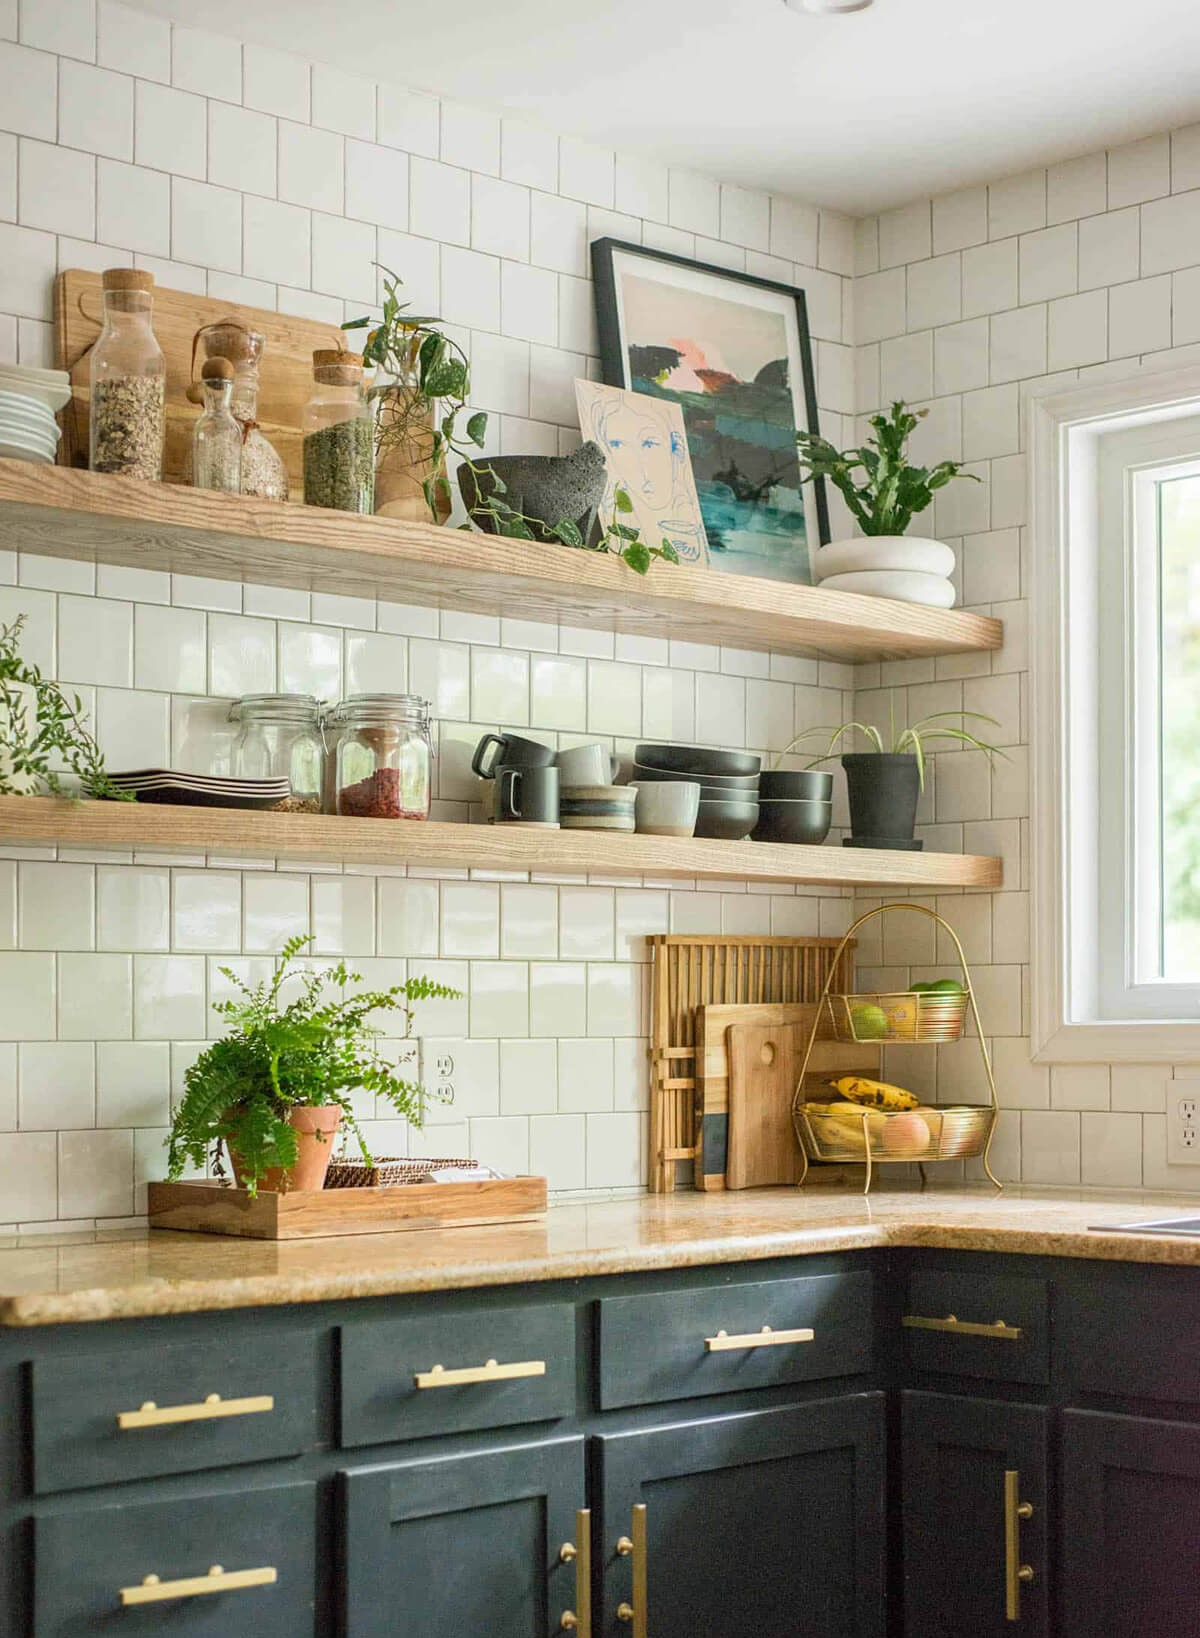 01-open-kitchen-shelf-ideas-homebnc